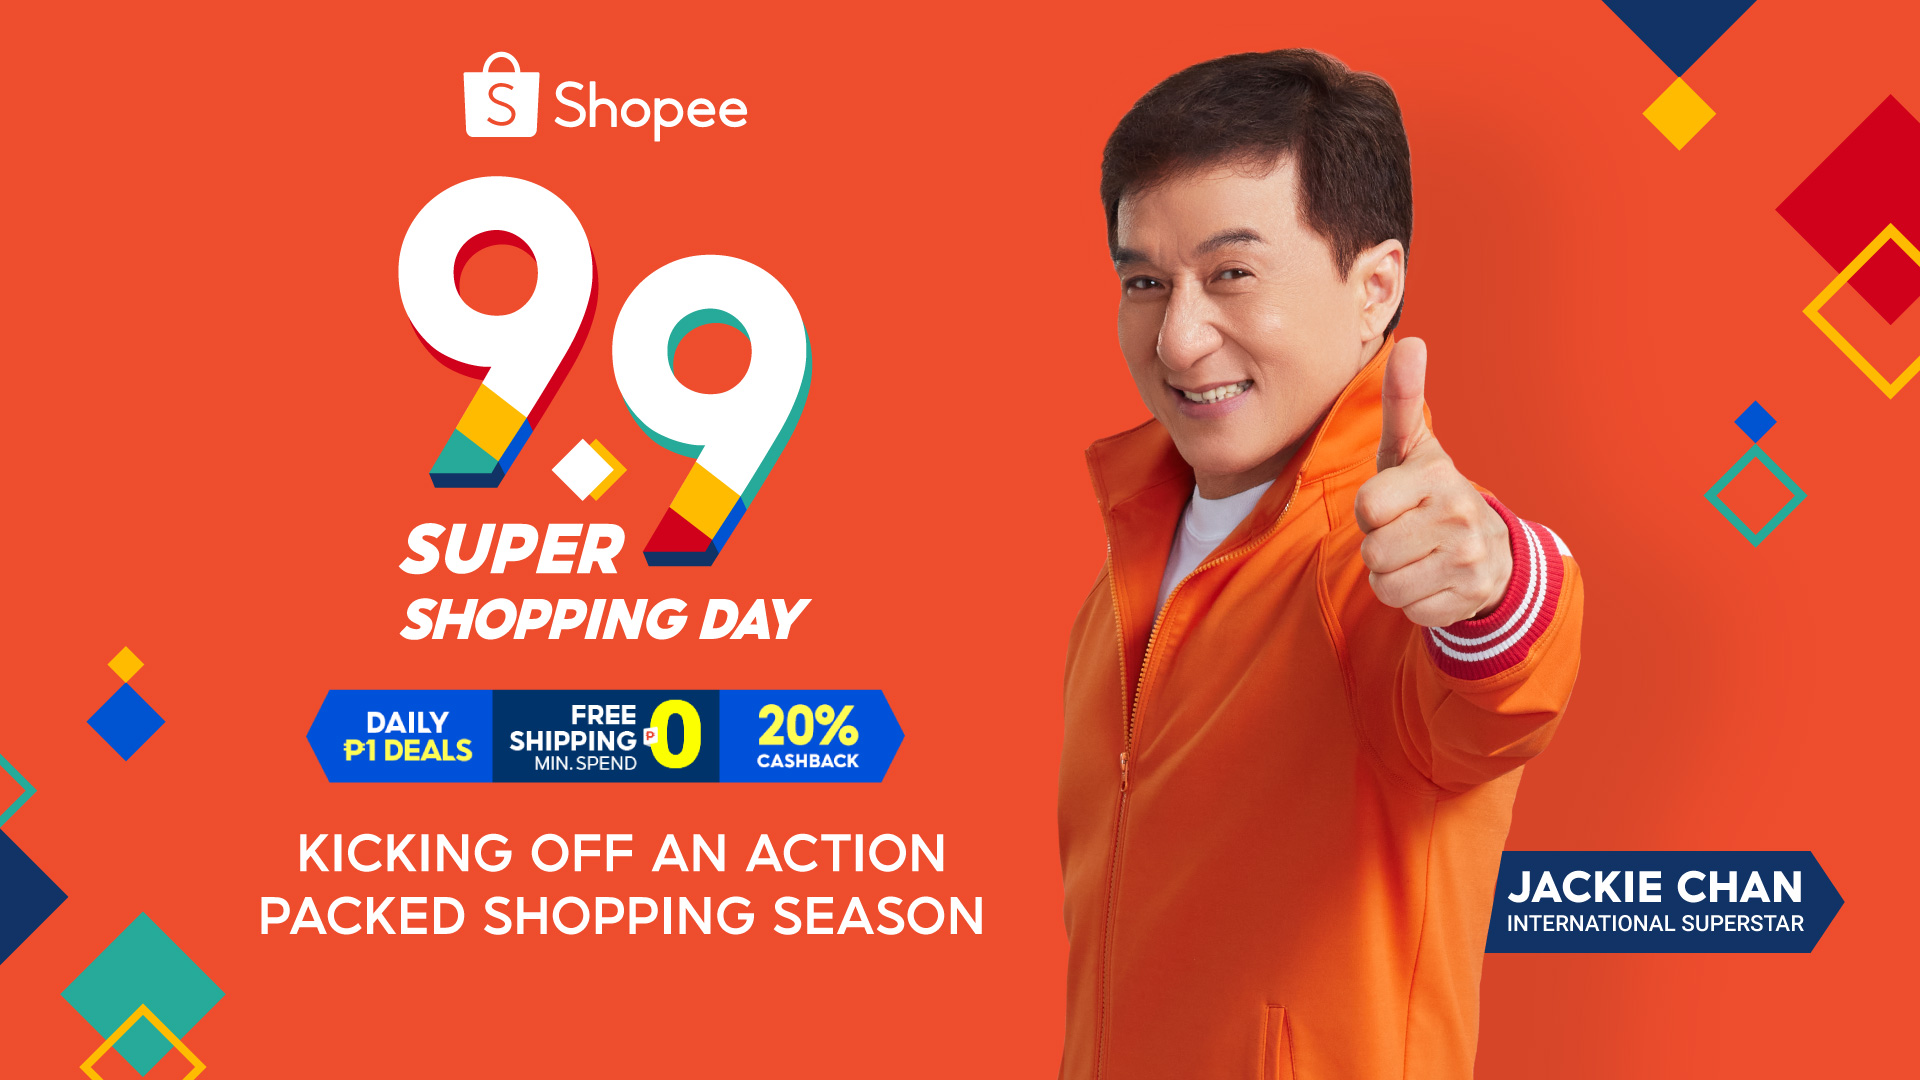 Shopee Kicks off the Most Action-Packed Year-End Shopping Season with 9.9 Super Shopping Day; International Superstar, Jackie Chan